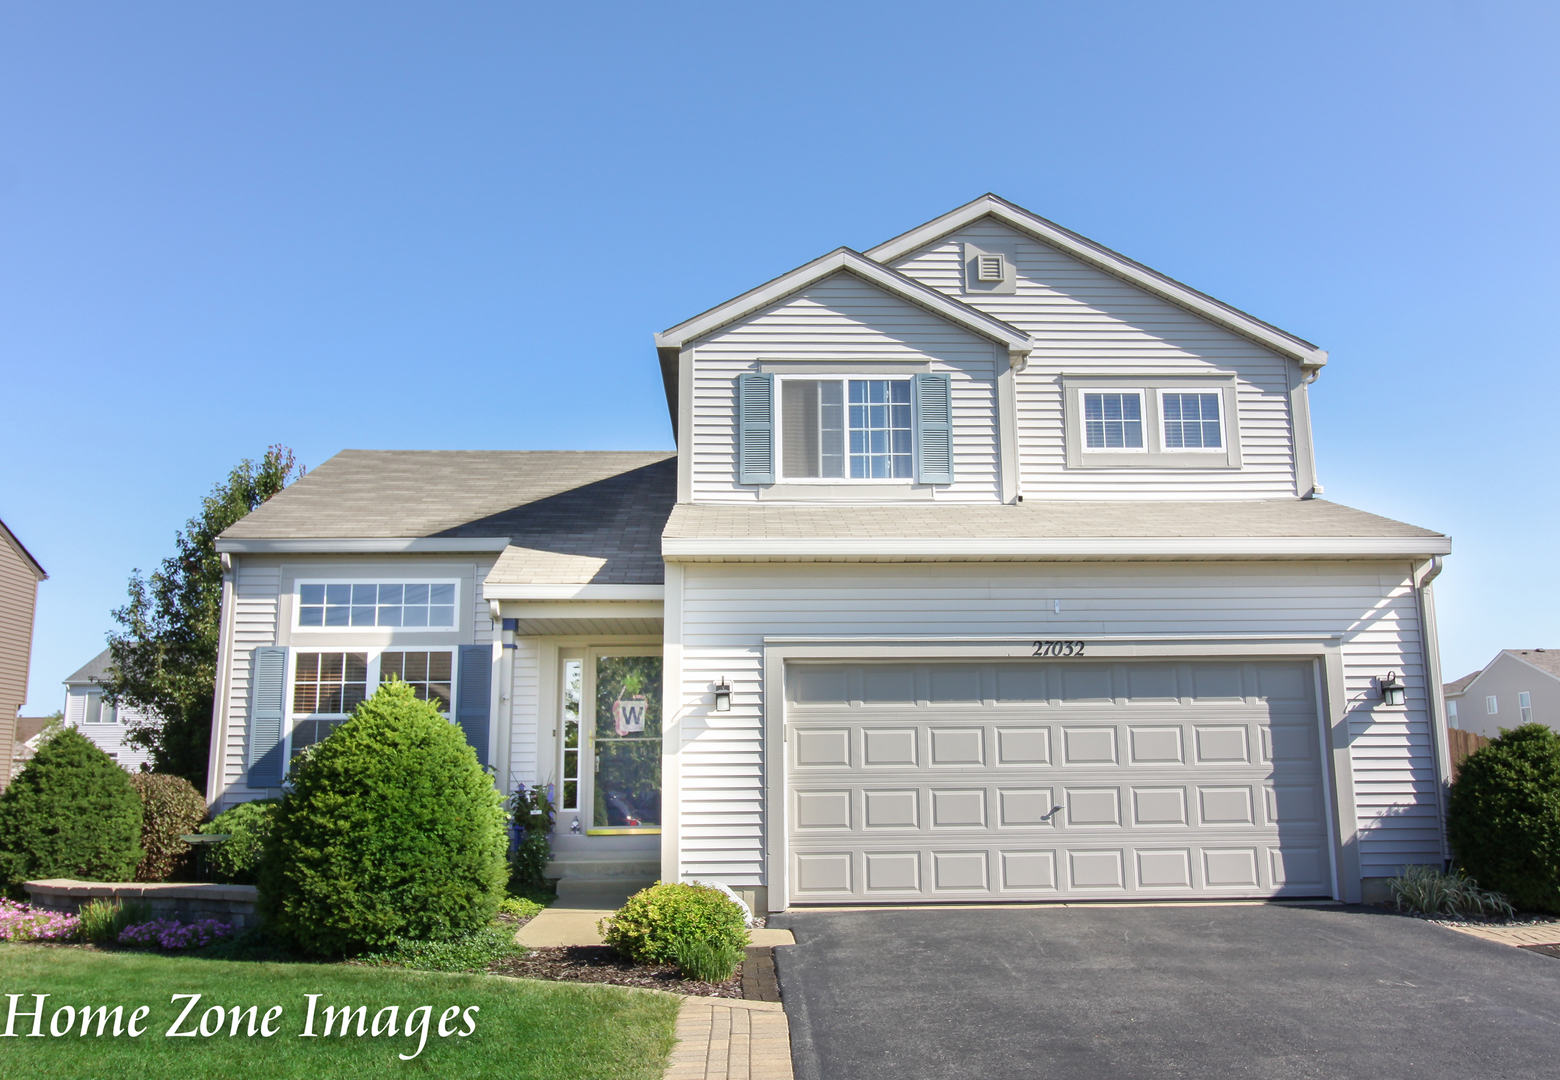 Photo of 27032 West Sycamore Road  CHANNAHON  IL